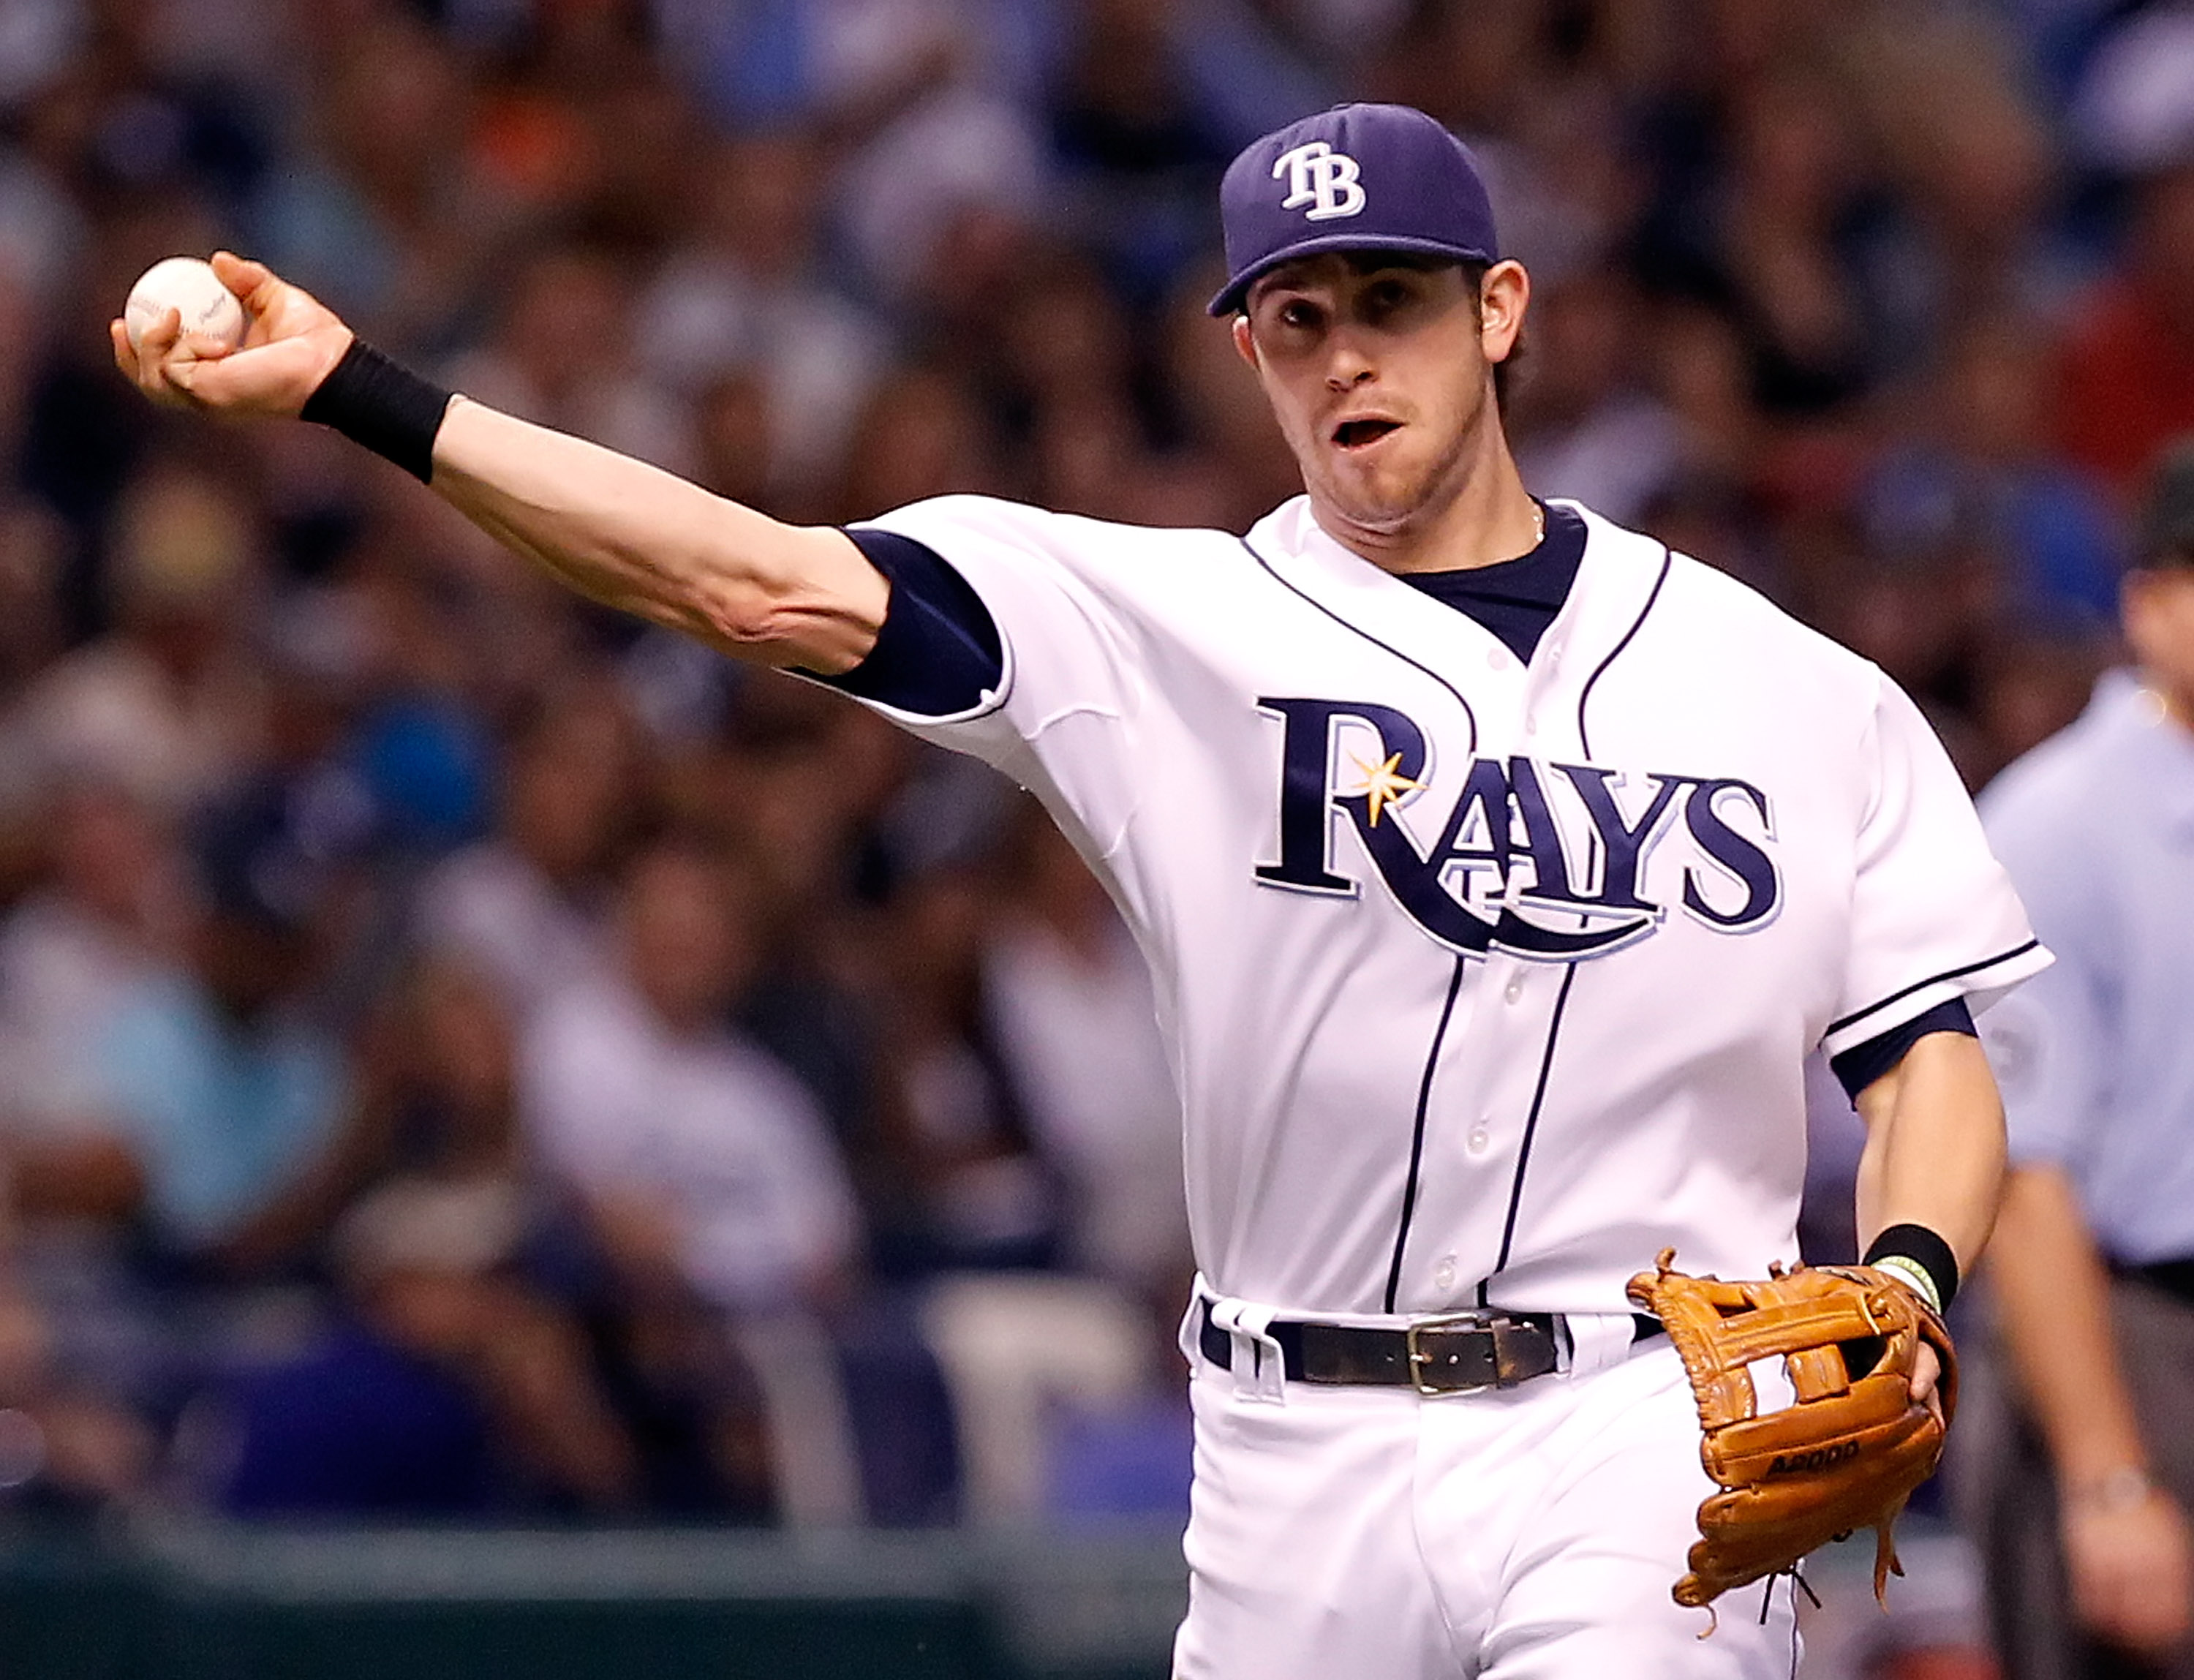 ST. PETERSBURG - SEPTEMBER 13:  Infielder Evan Longoria #3 of the Tampa Bay Rays throws over to first for an out against the New York Yankees during the game at Tropicana Field on September 13, 2010 in St. Petersburg, Florida.  (Photo by J. Meric/Getty Im